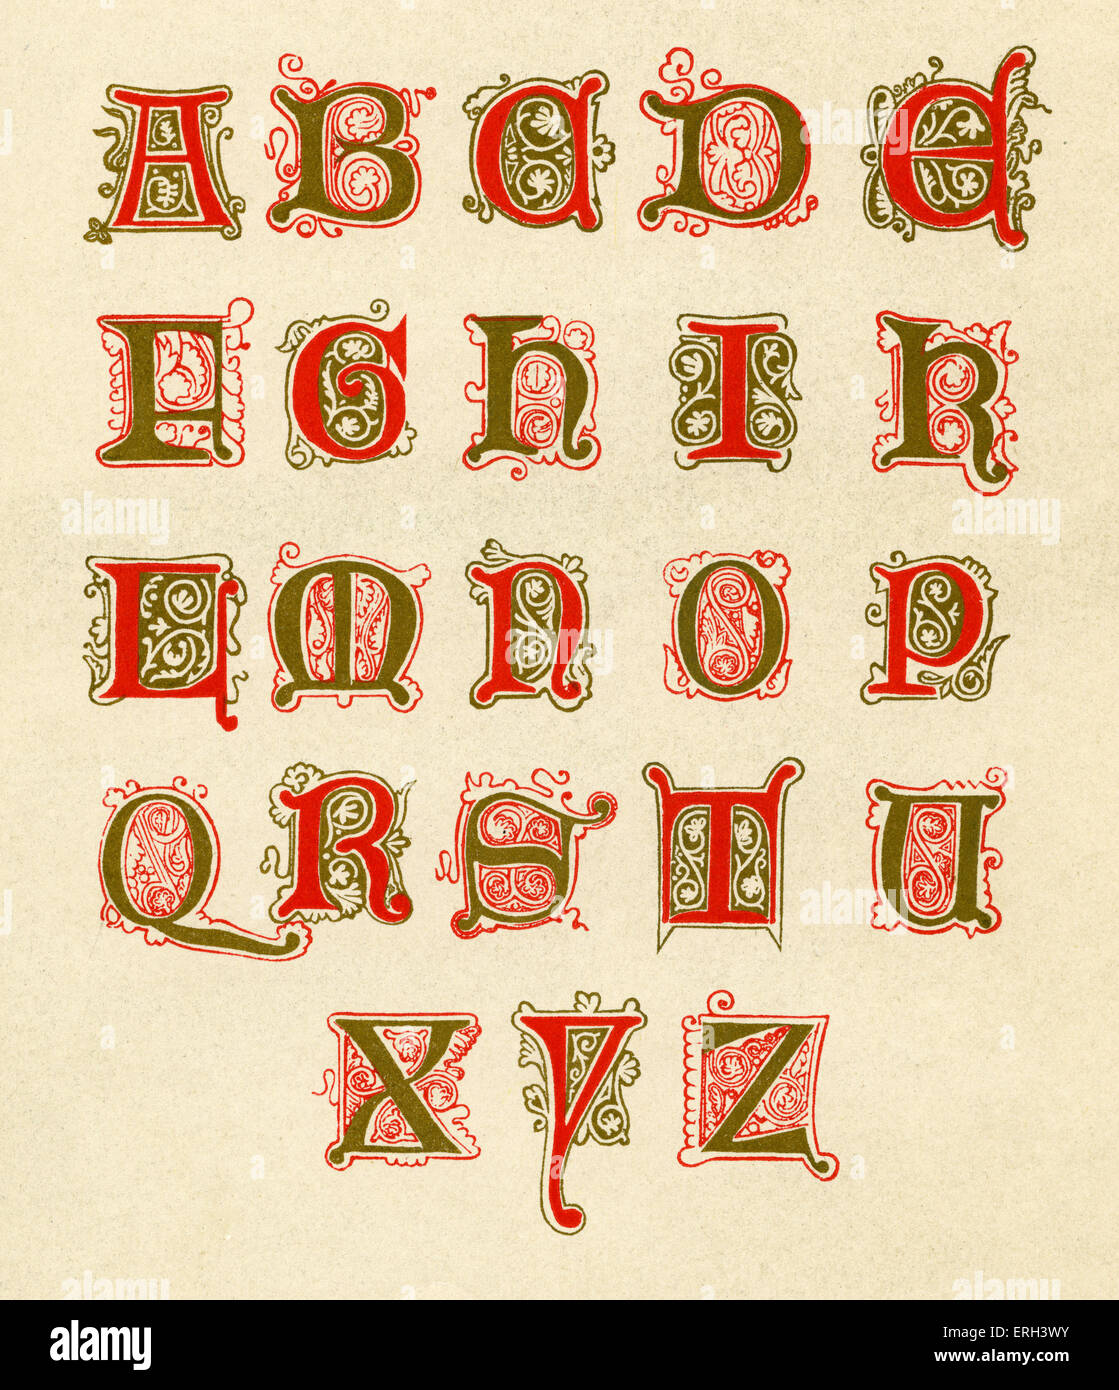 Fifteenth century illuminated alphabet. Red and gold. (1886 source). - Stock Image